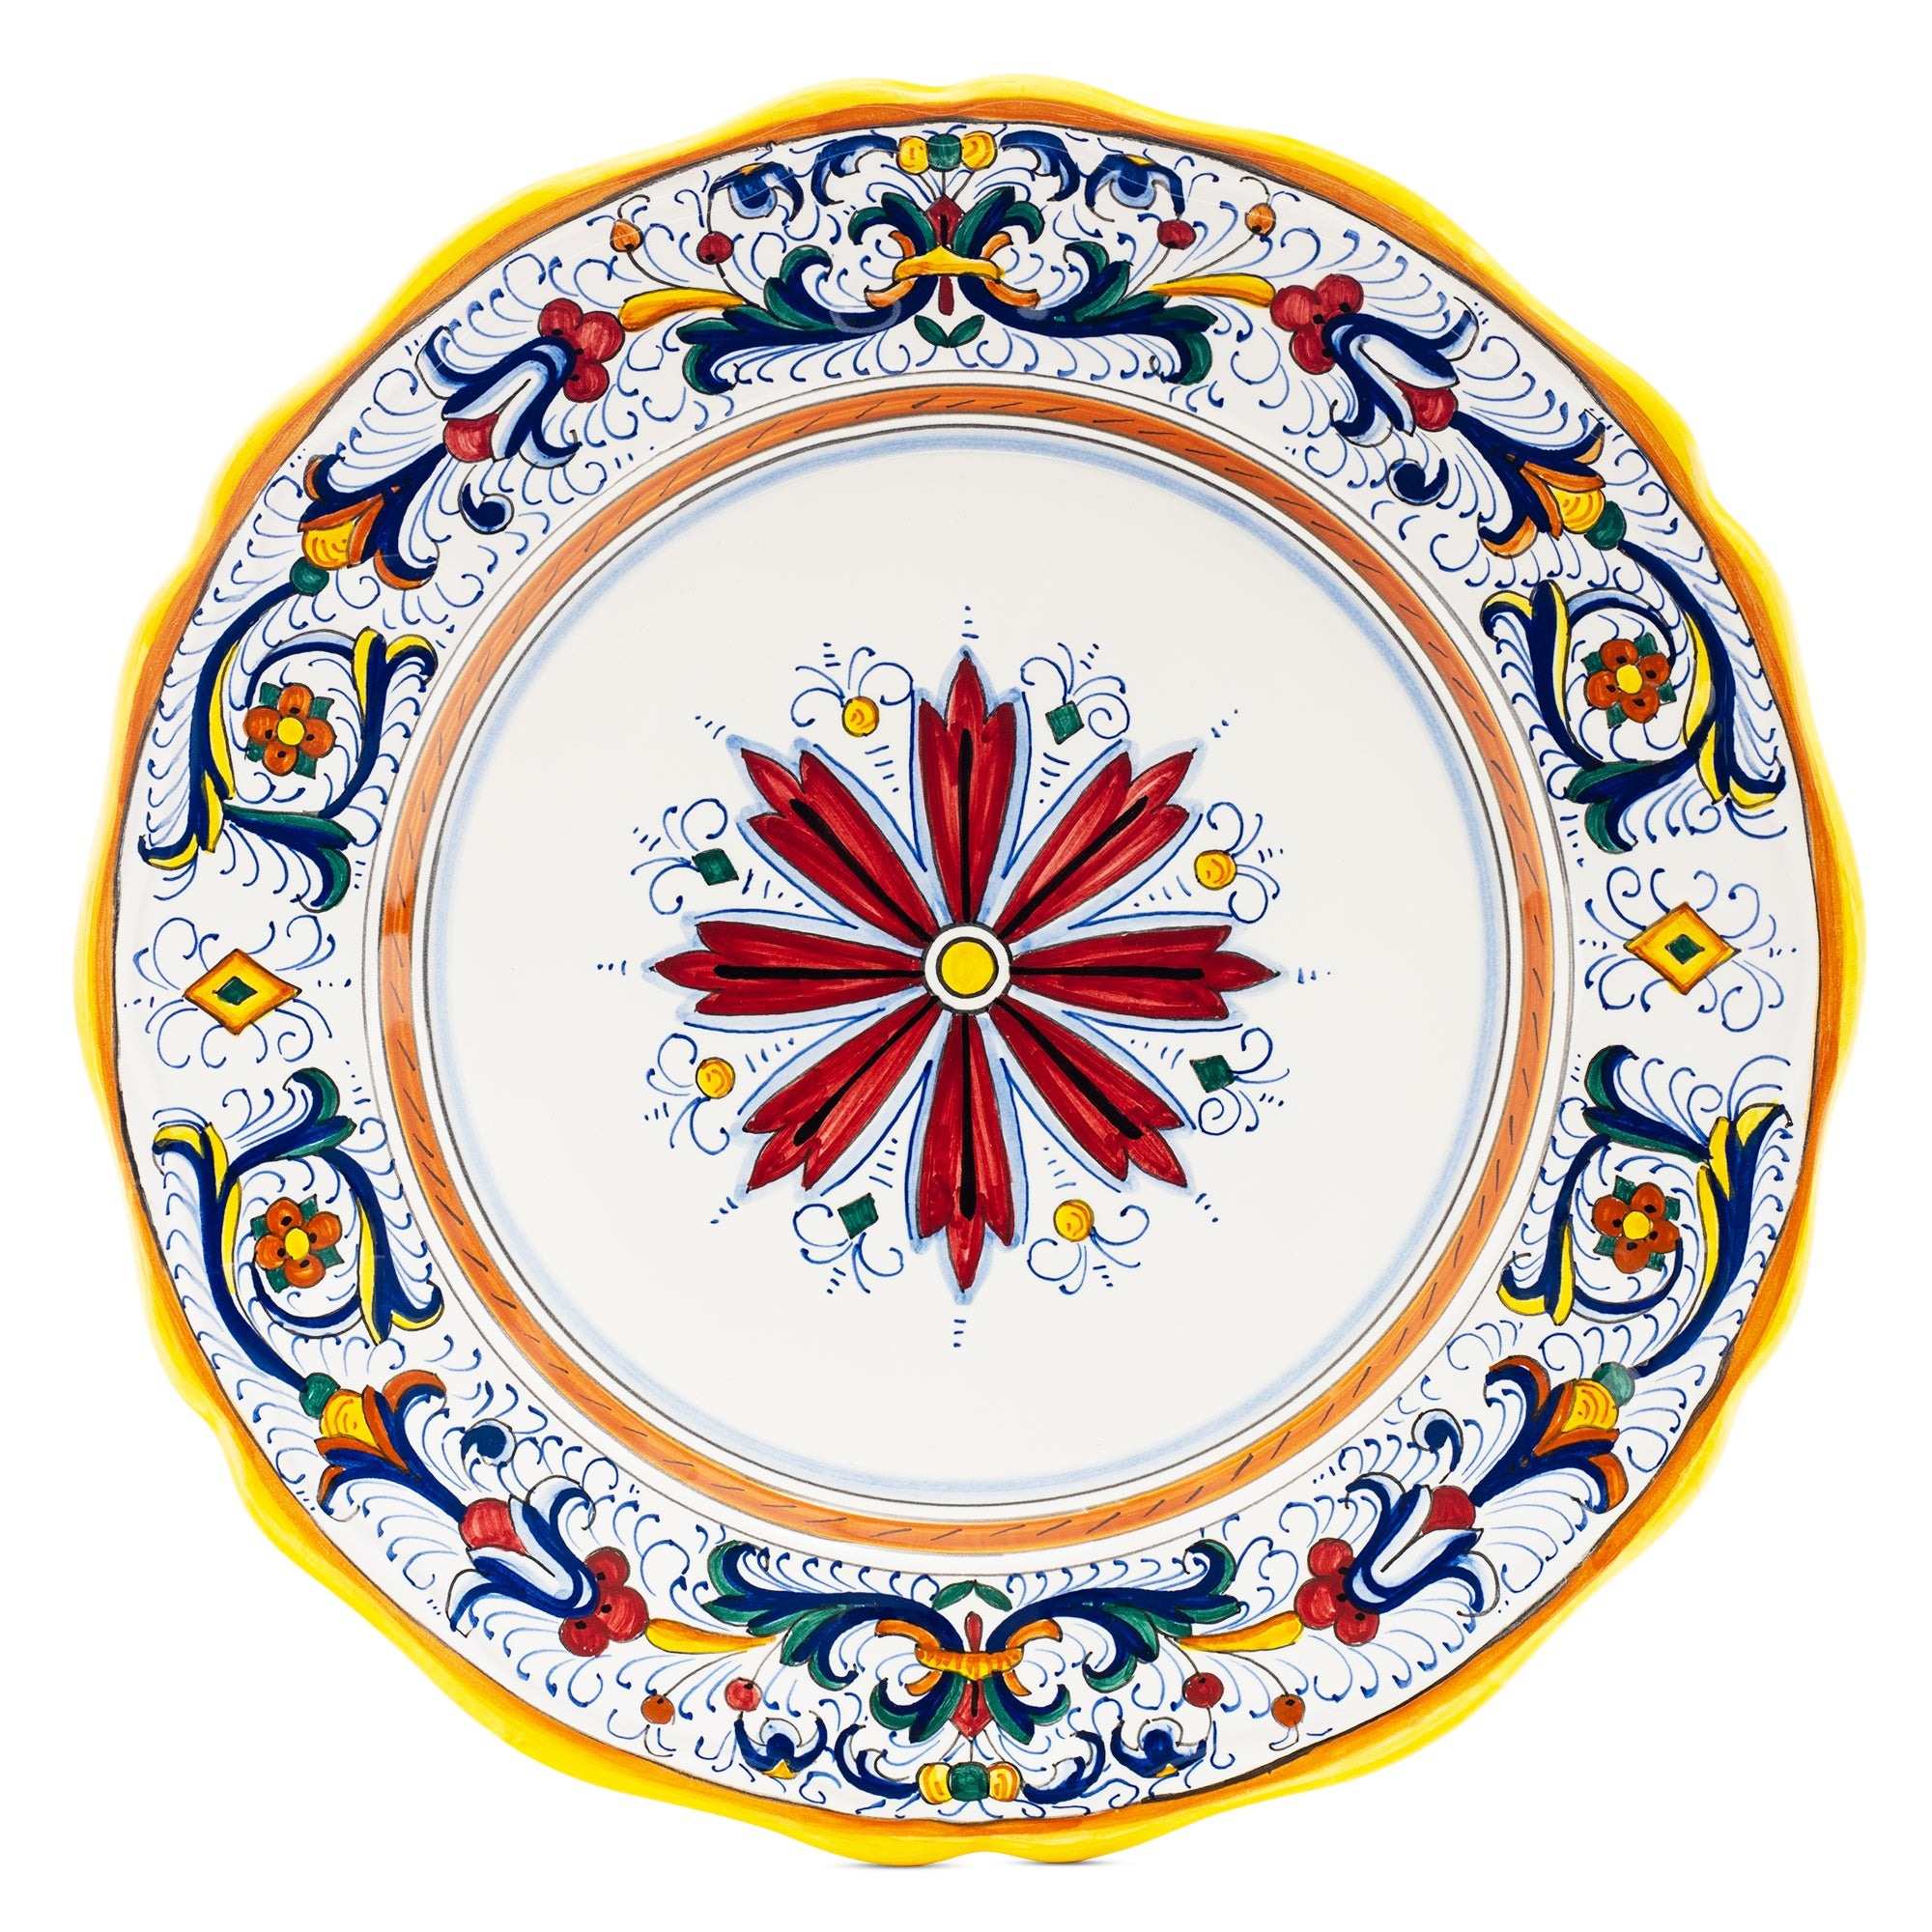 Ricco Deruta Dinner Plate, Full Design